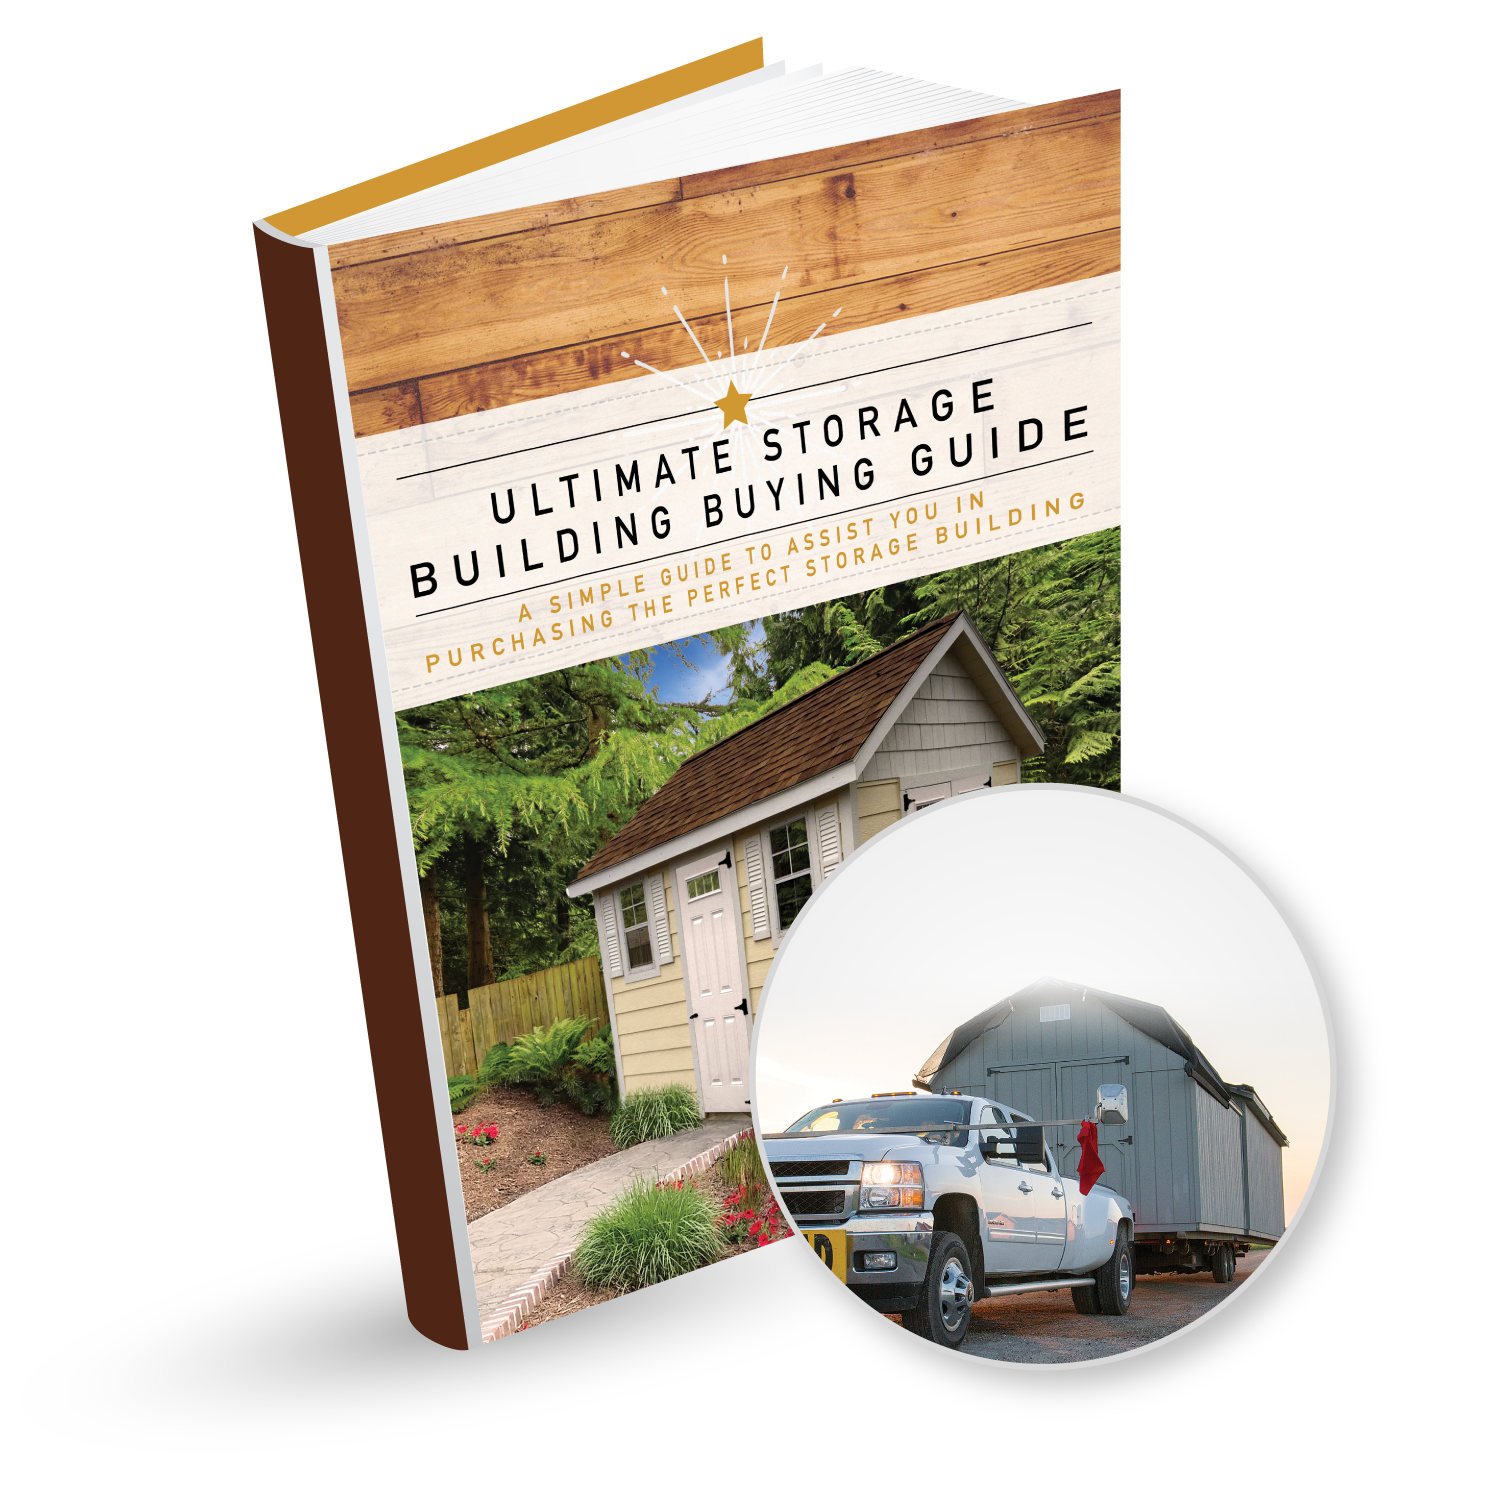 Ultimate Storage Building Buying Guide